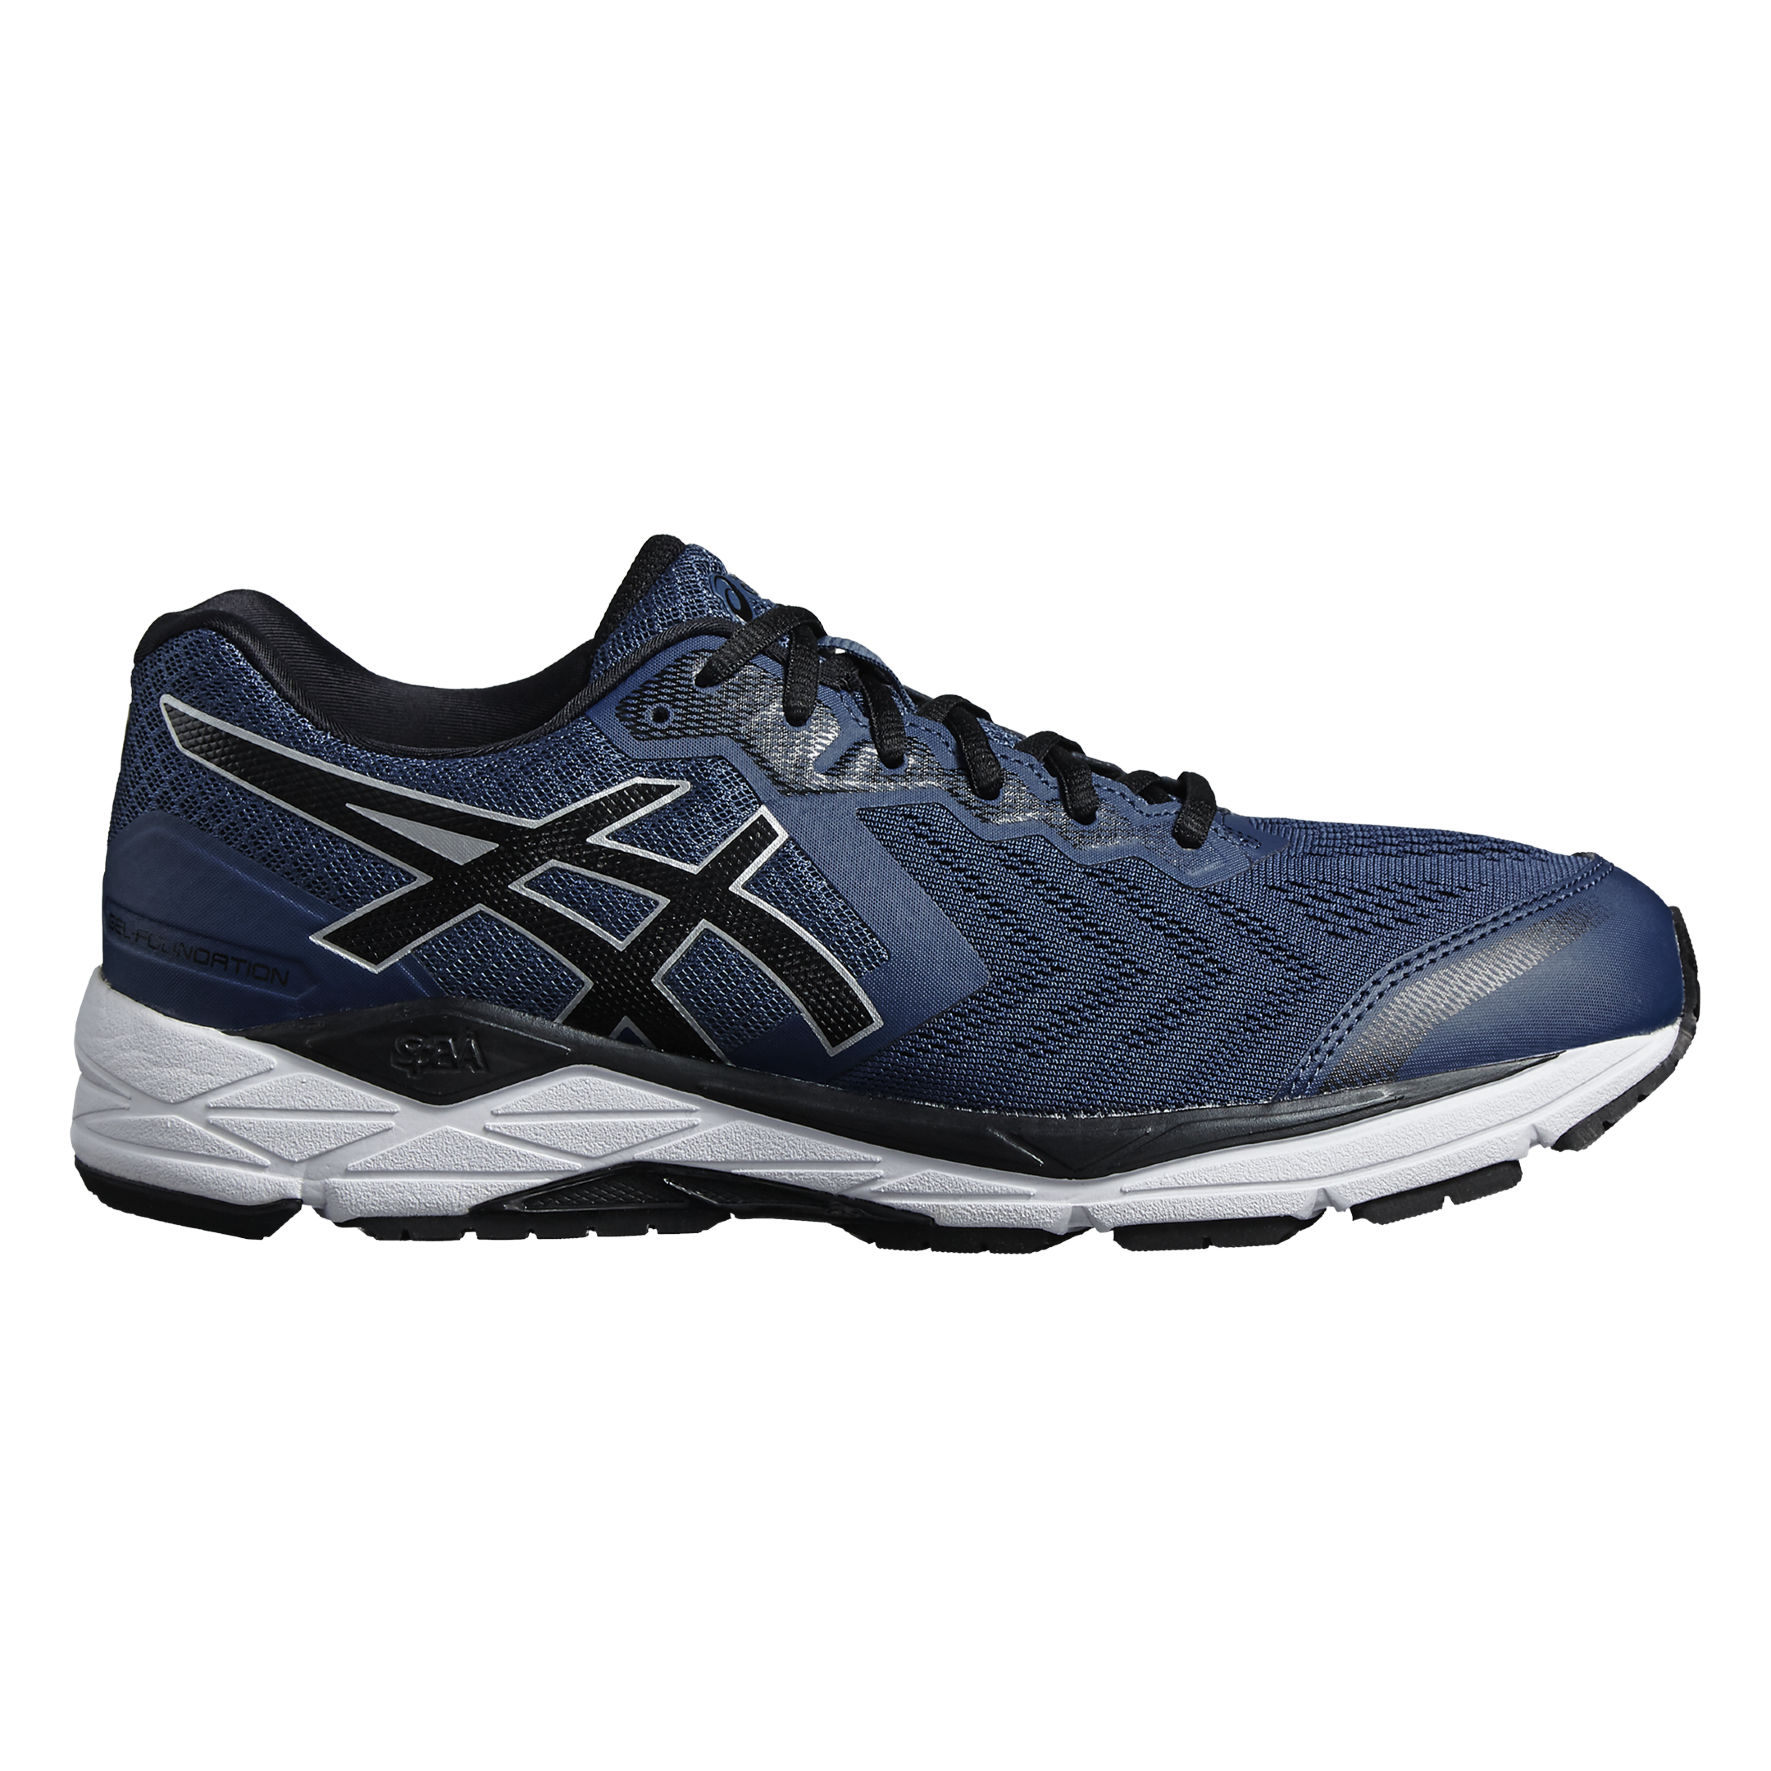 Asics Gel Foundation 13 2E in Blau